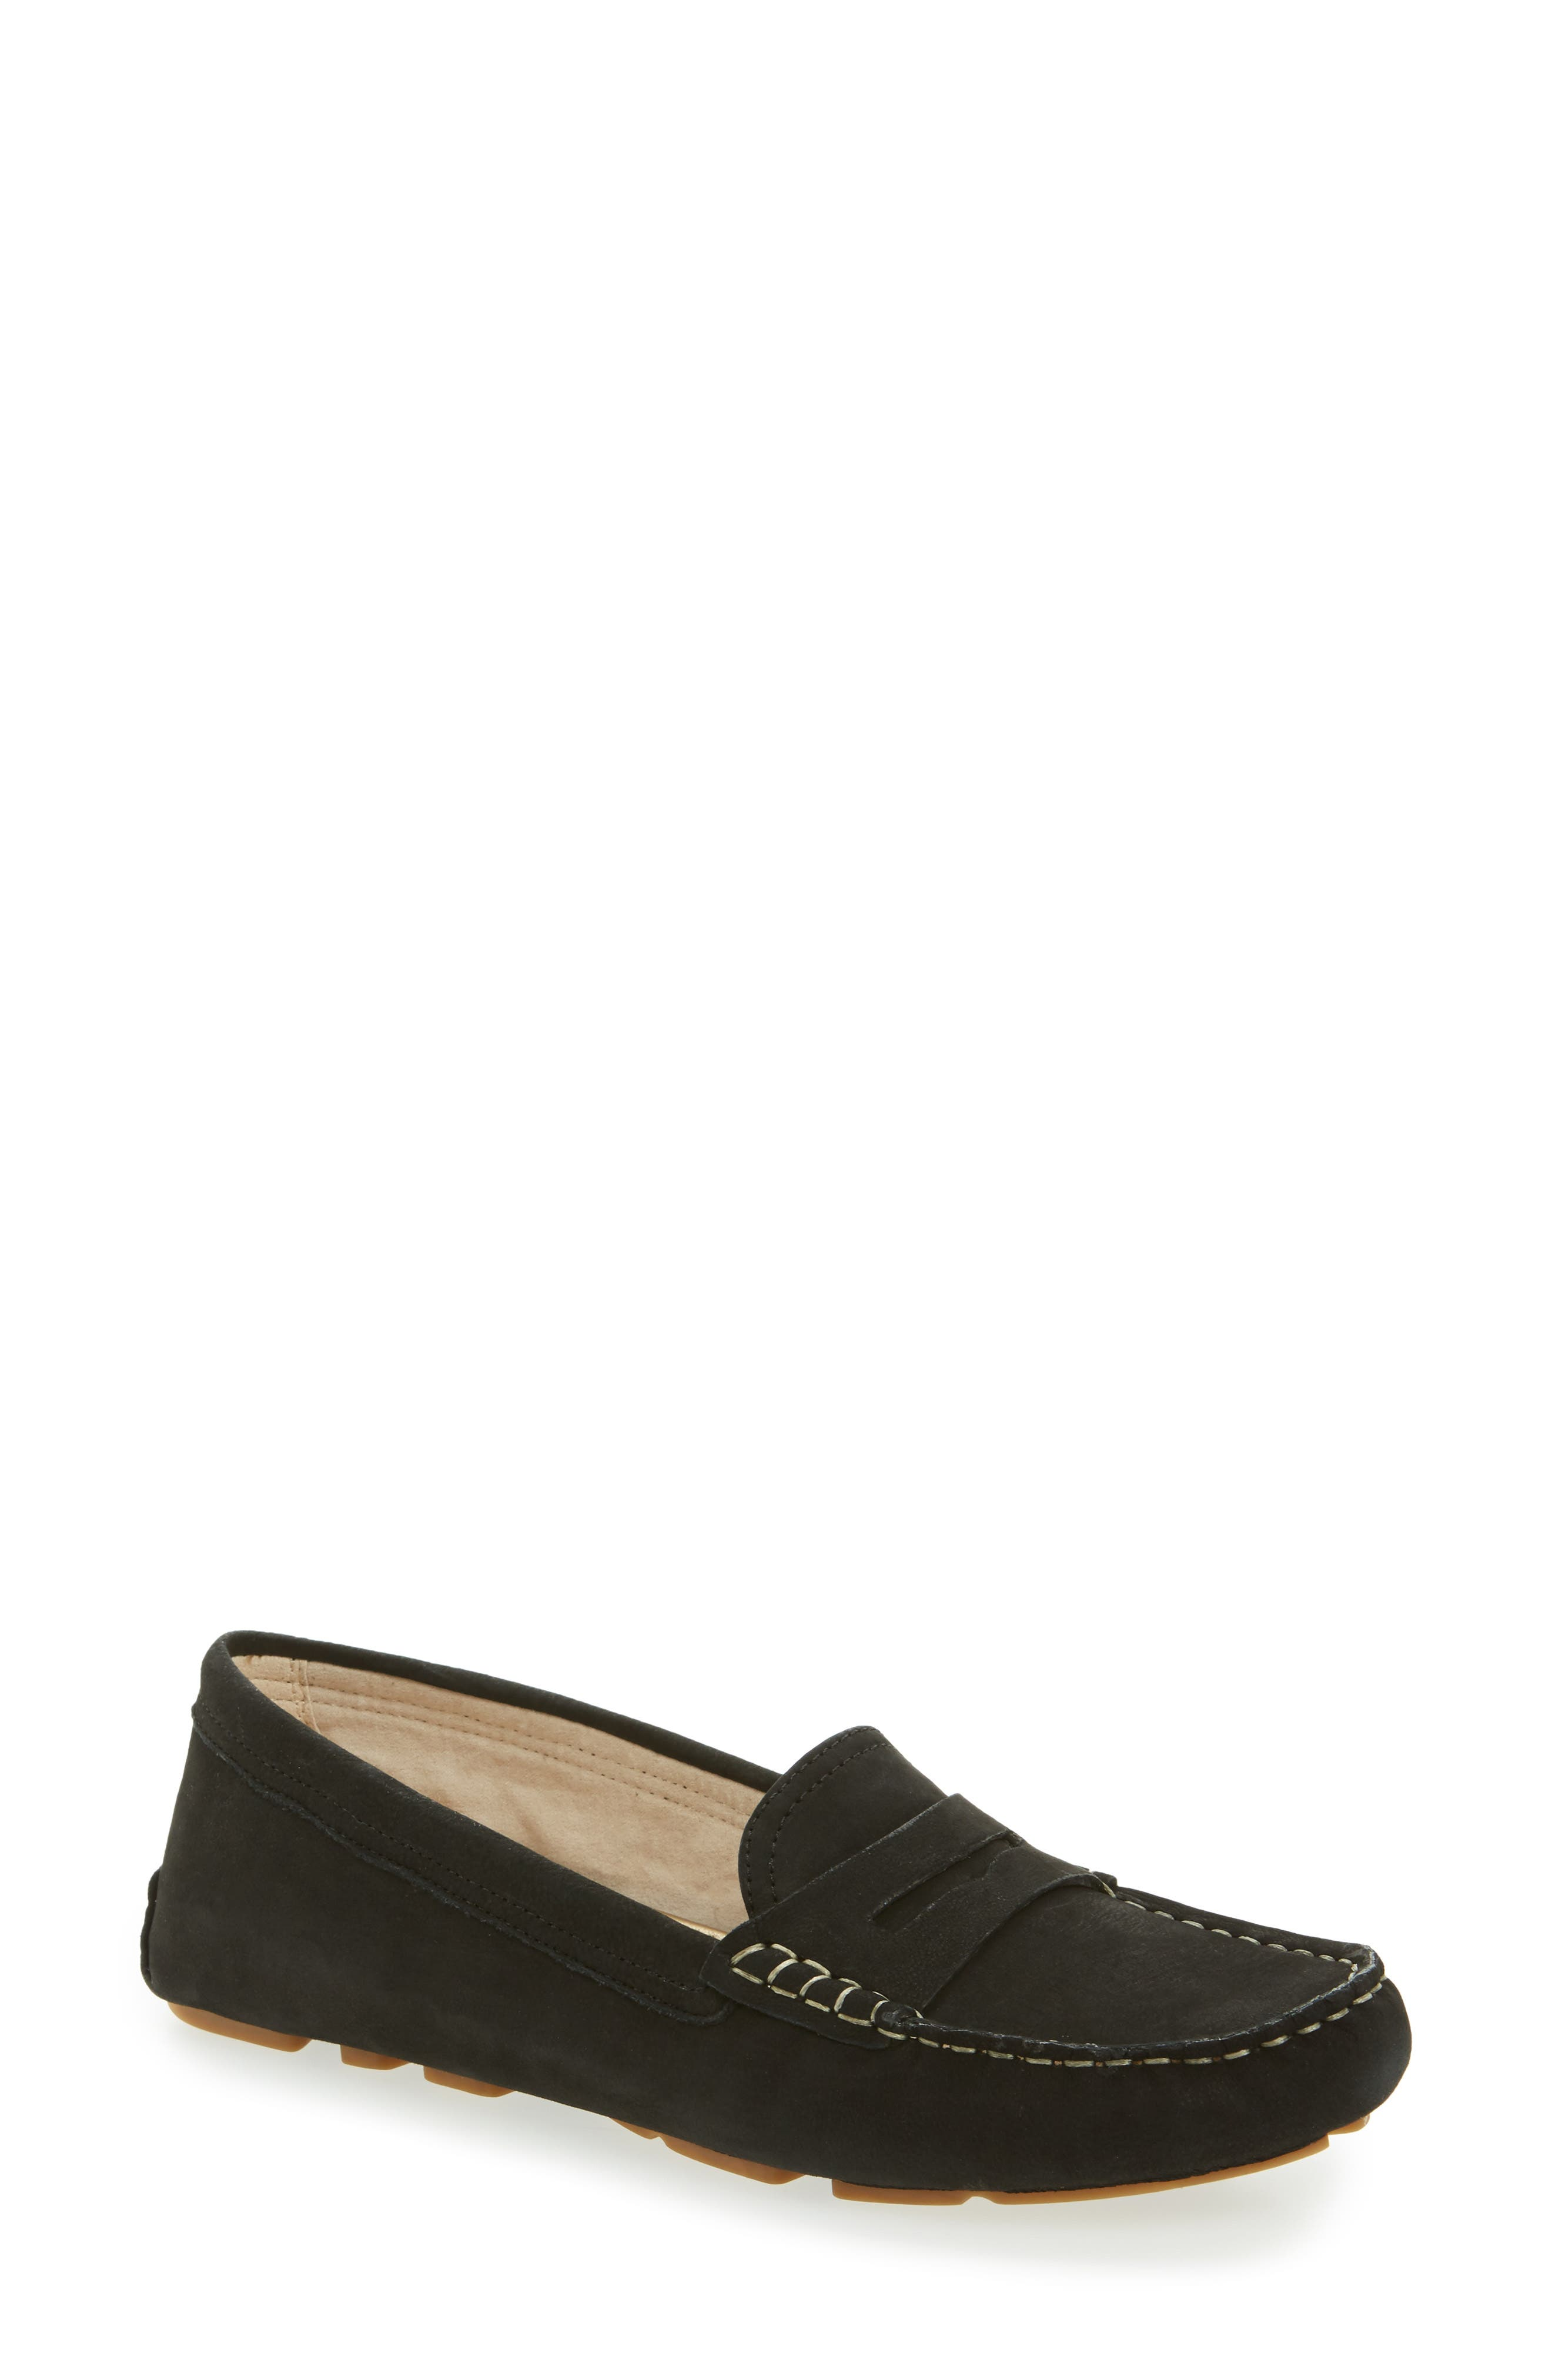 Filly Moc Toe Loafer,                             Main thumbnail 1, color,                             001